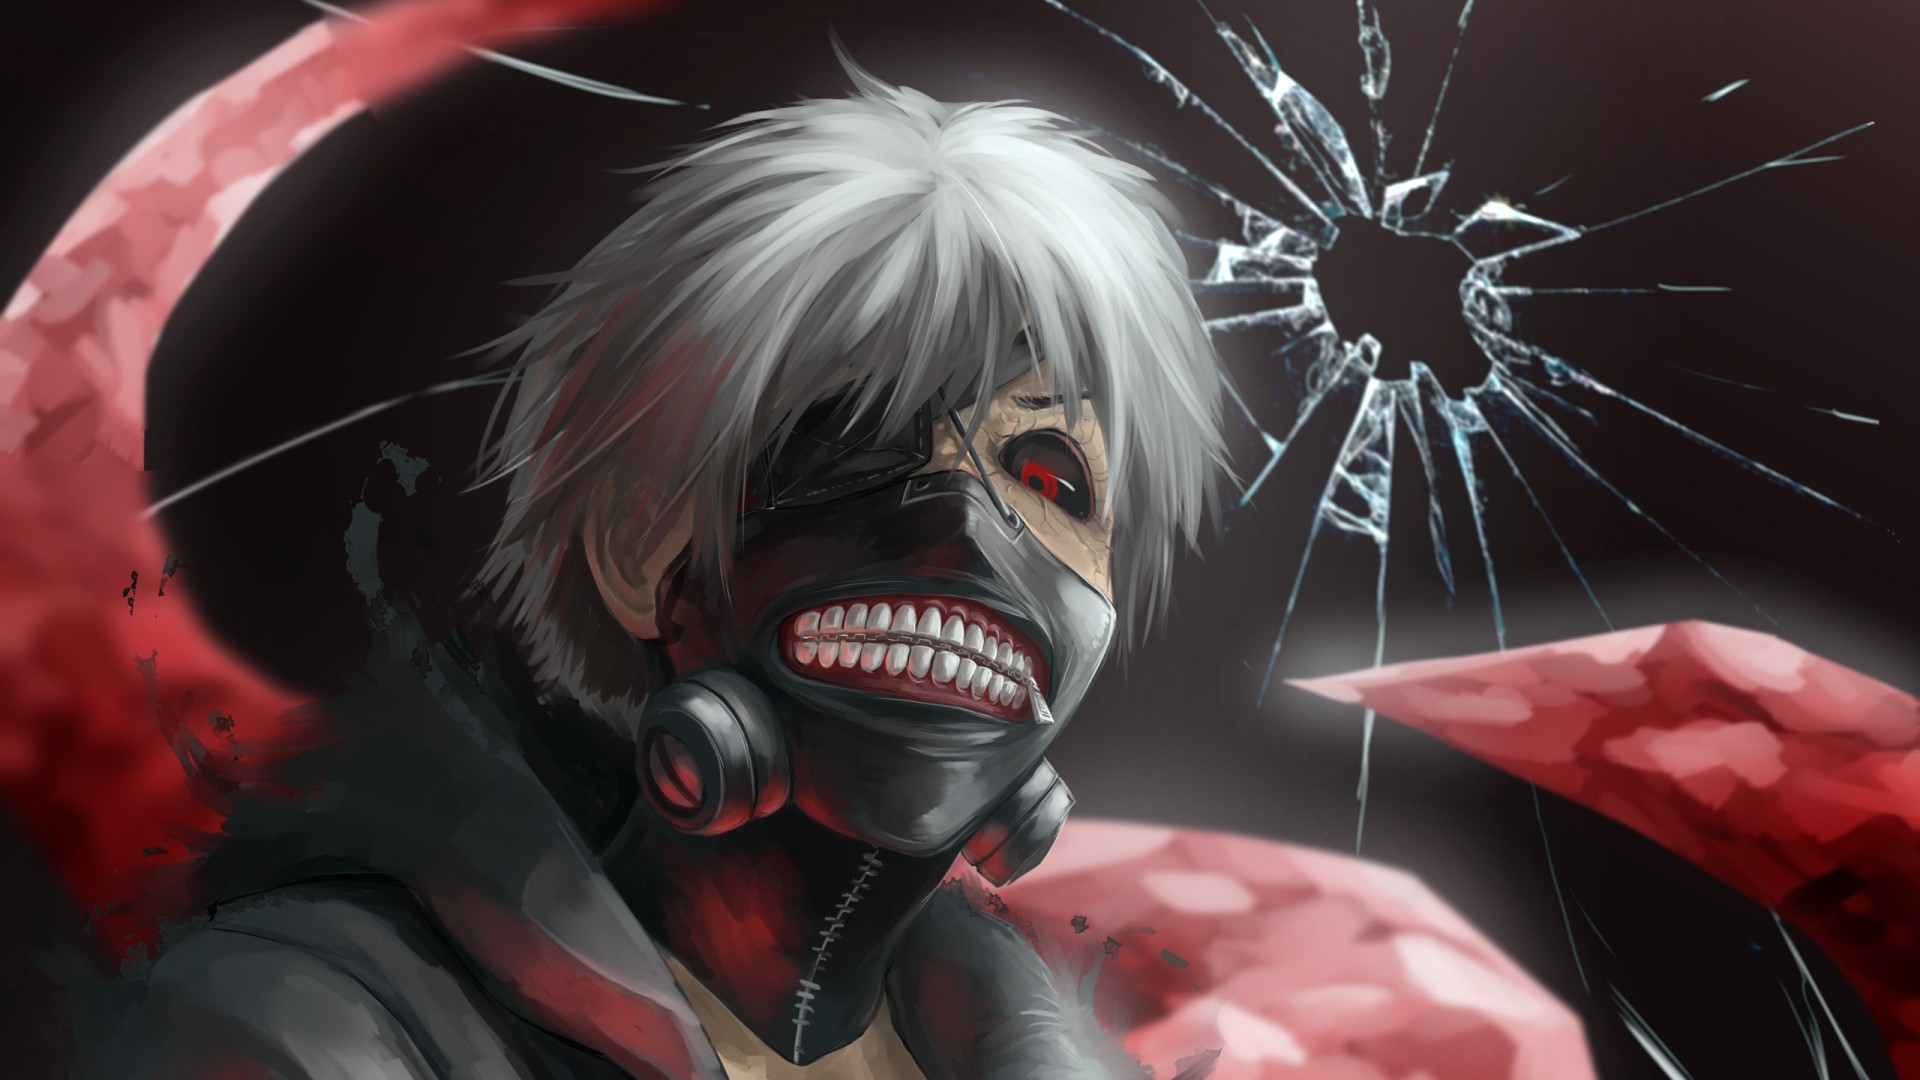 tokyo ghoul clipart 1920x1080 20 free Cliparts  Download images on Clipground 2021